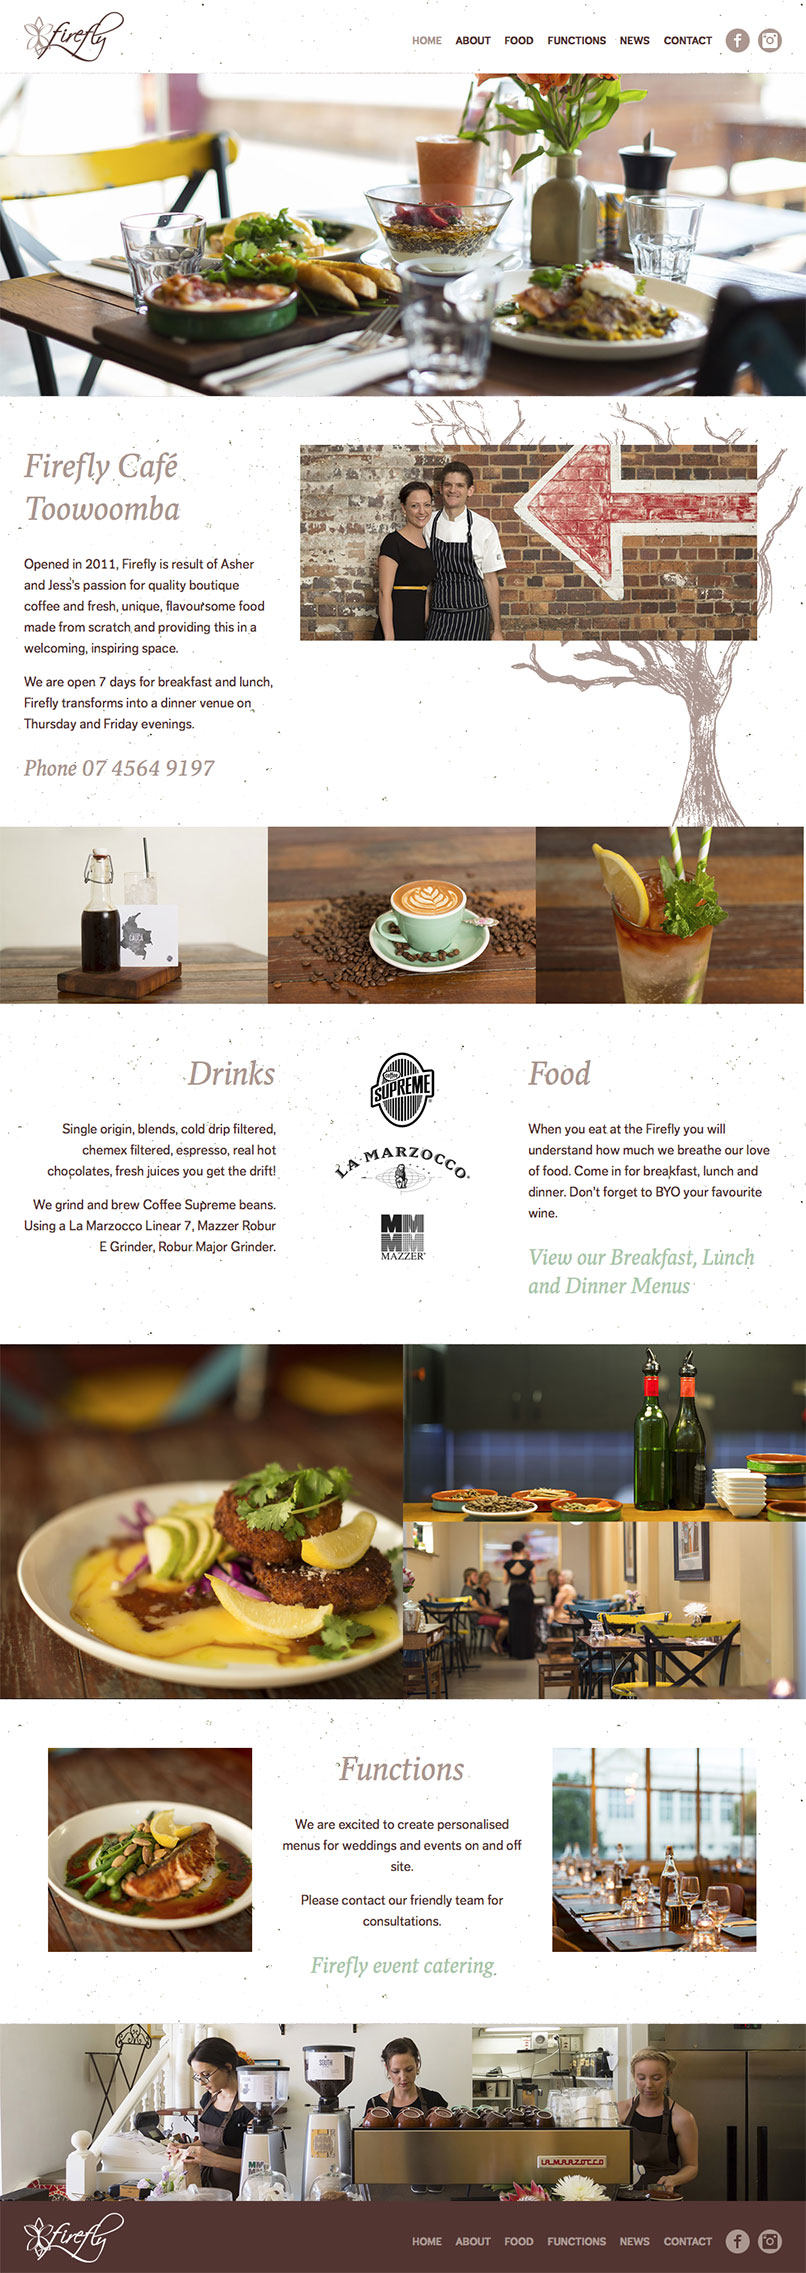 The Firefly Cafe Website